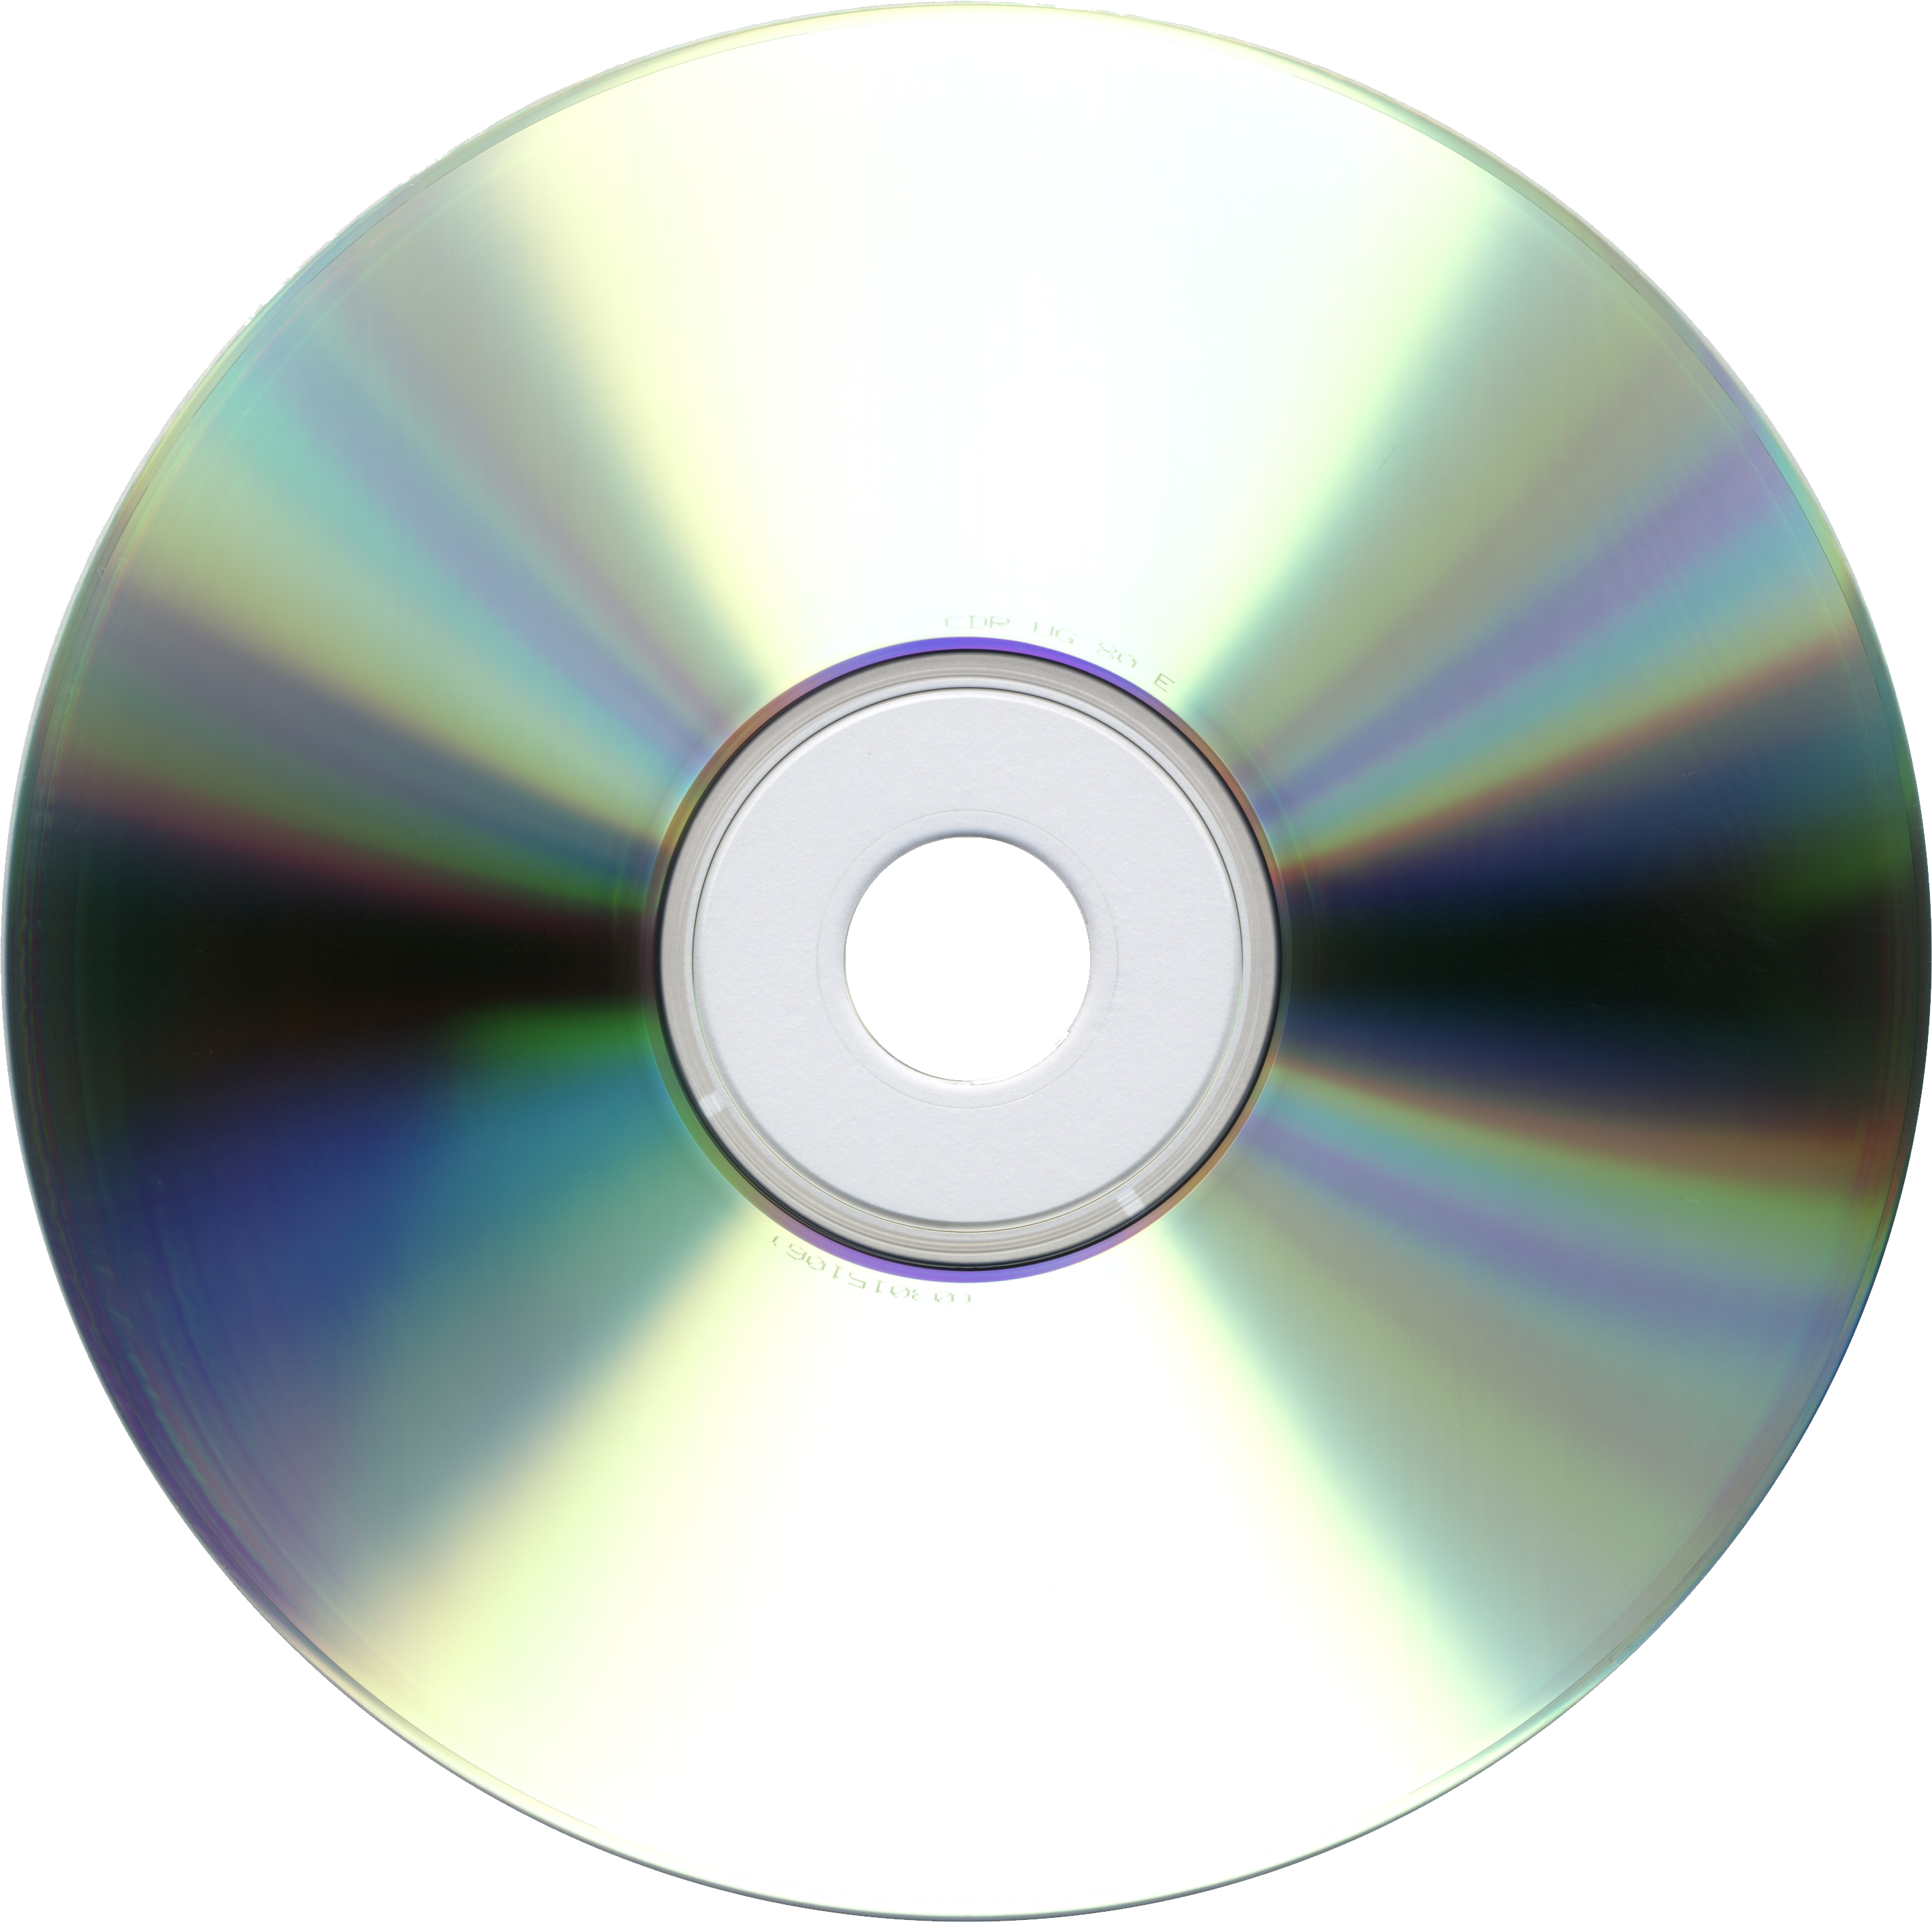 Transparent cd software. Rtx pro link repeater